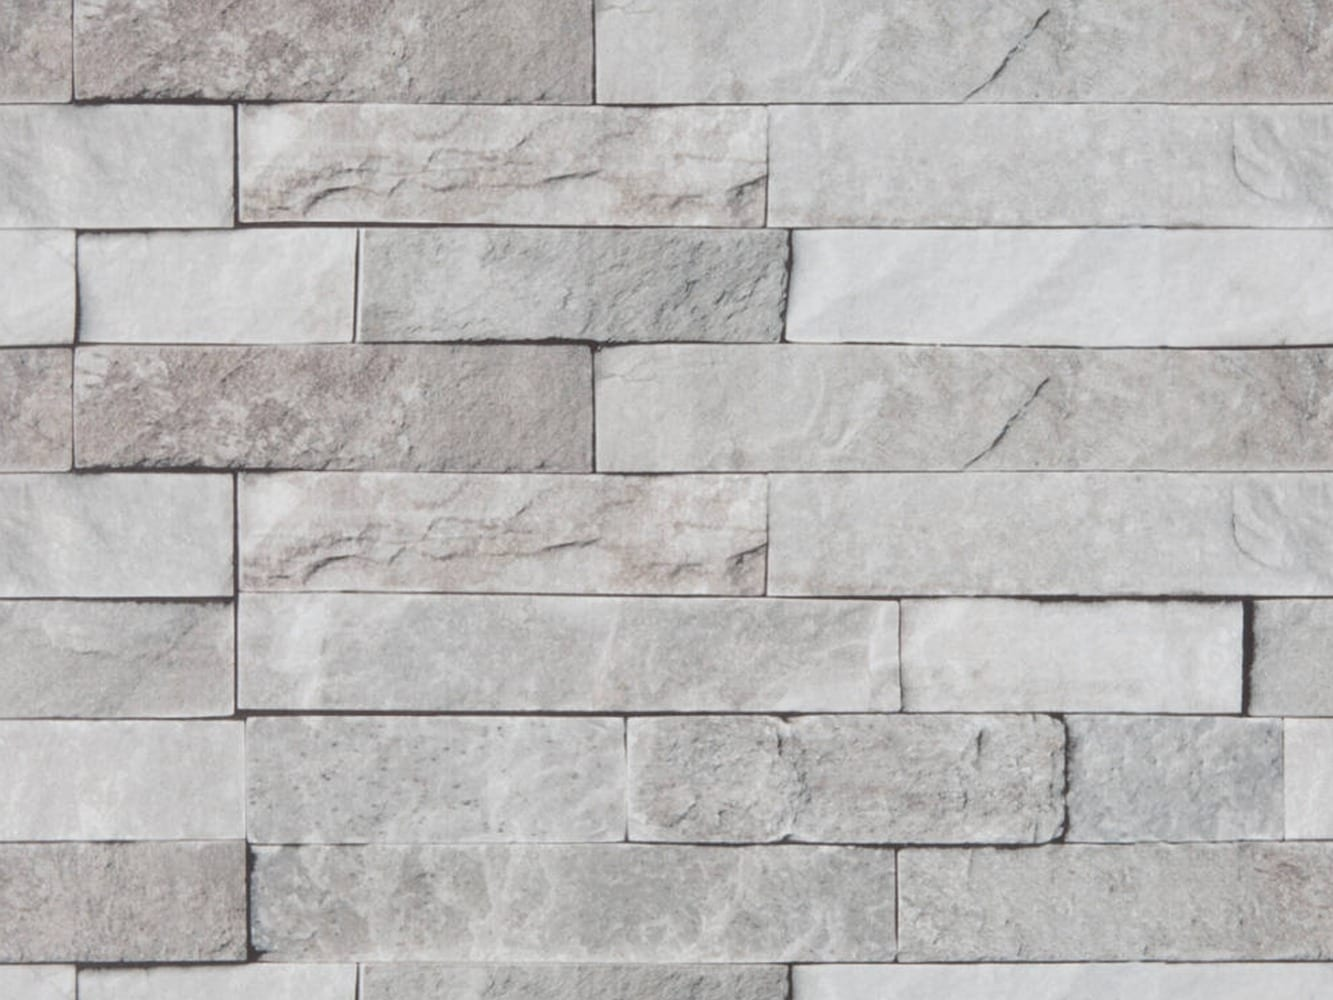 Neptune Grey Brick Pvc Wall Panels 7 5mm X 400mm X 2 8m Pack Of 3 Allpanels